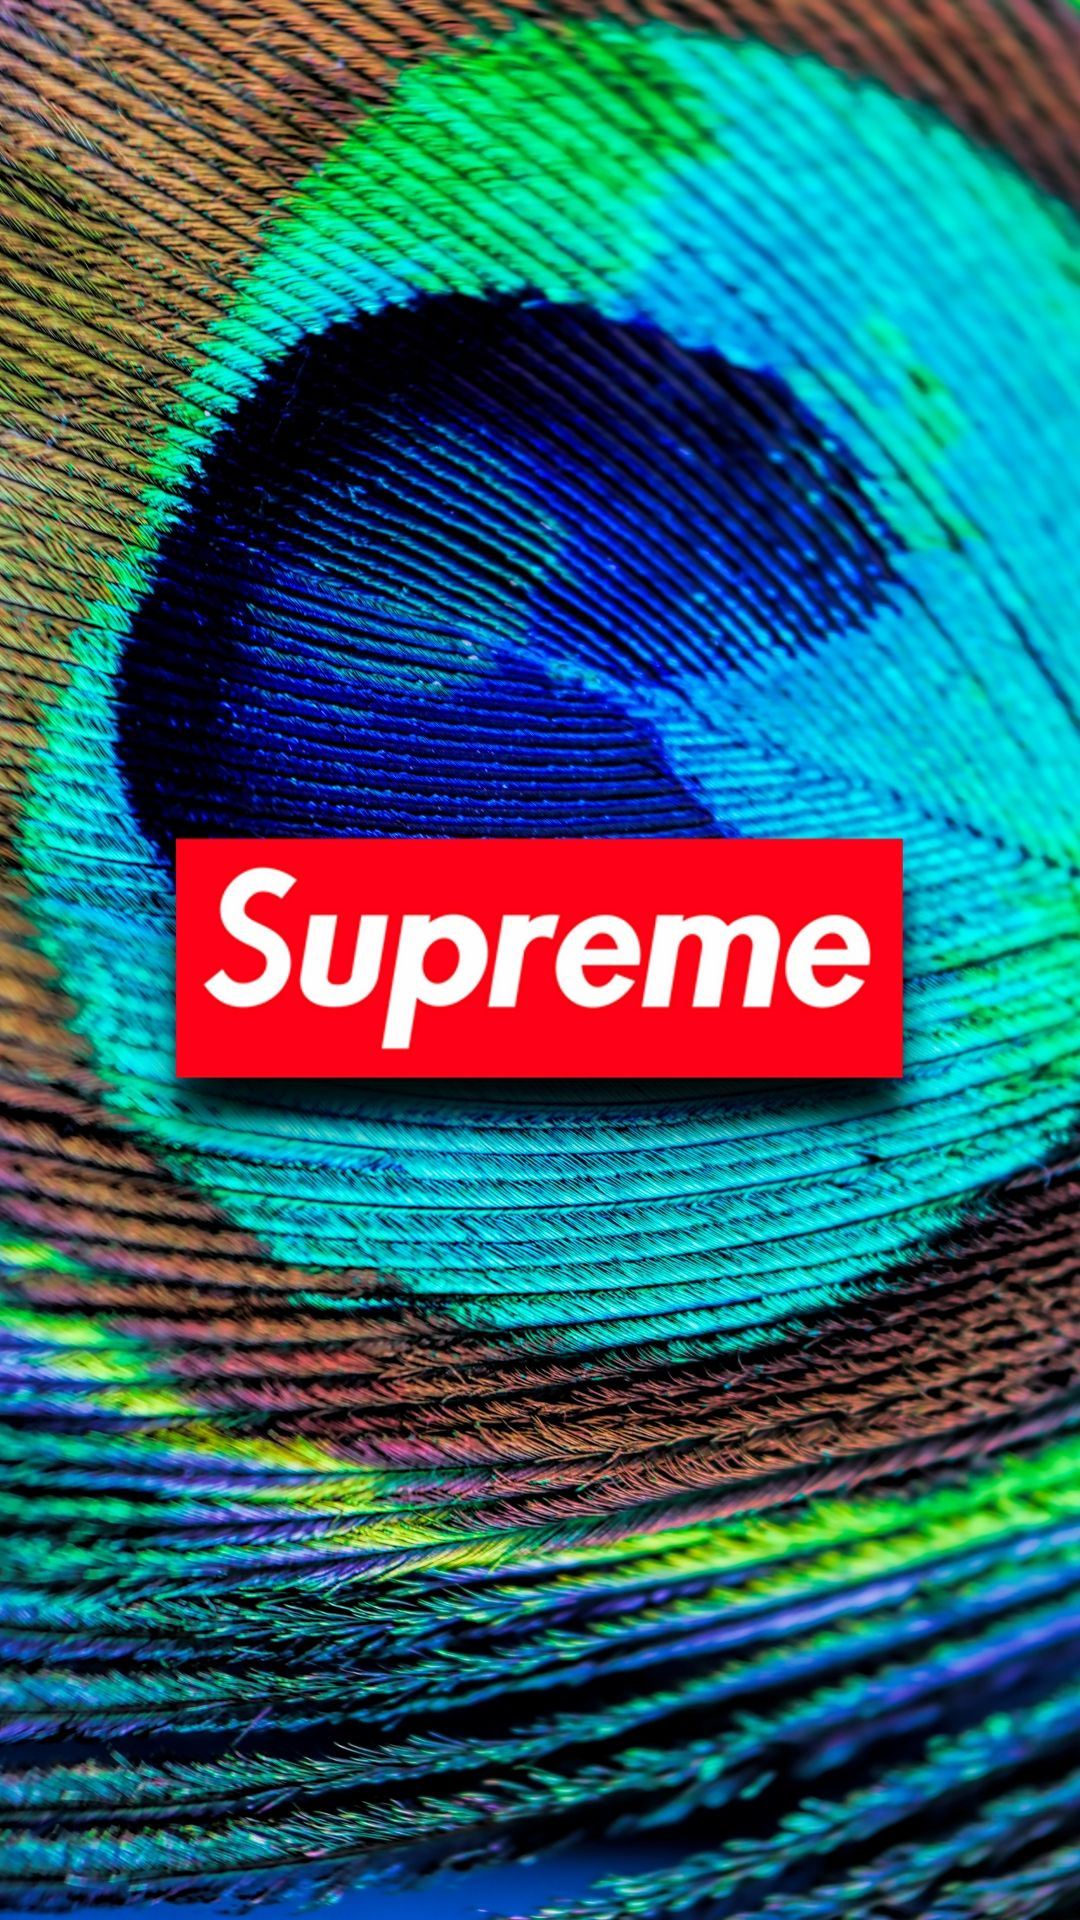 Supreme Wallpapers For Phone Wallpaperize Supreme Wallpaper Phone Wallpaper Wallpaper